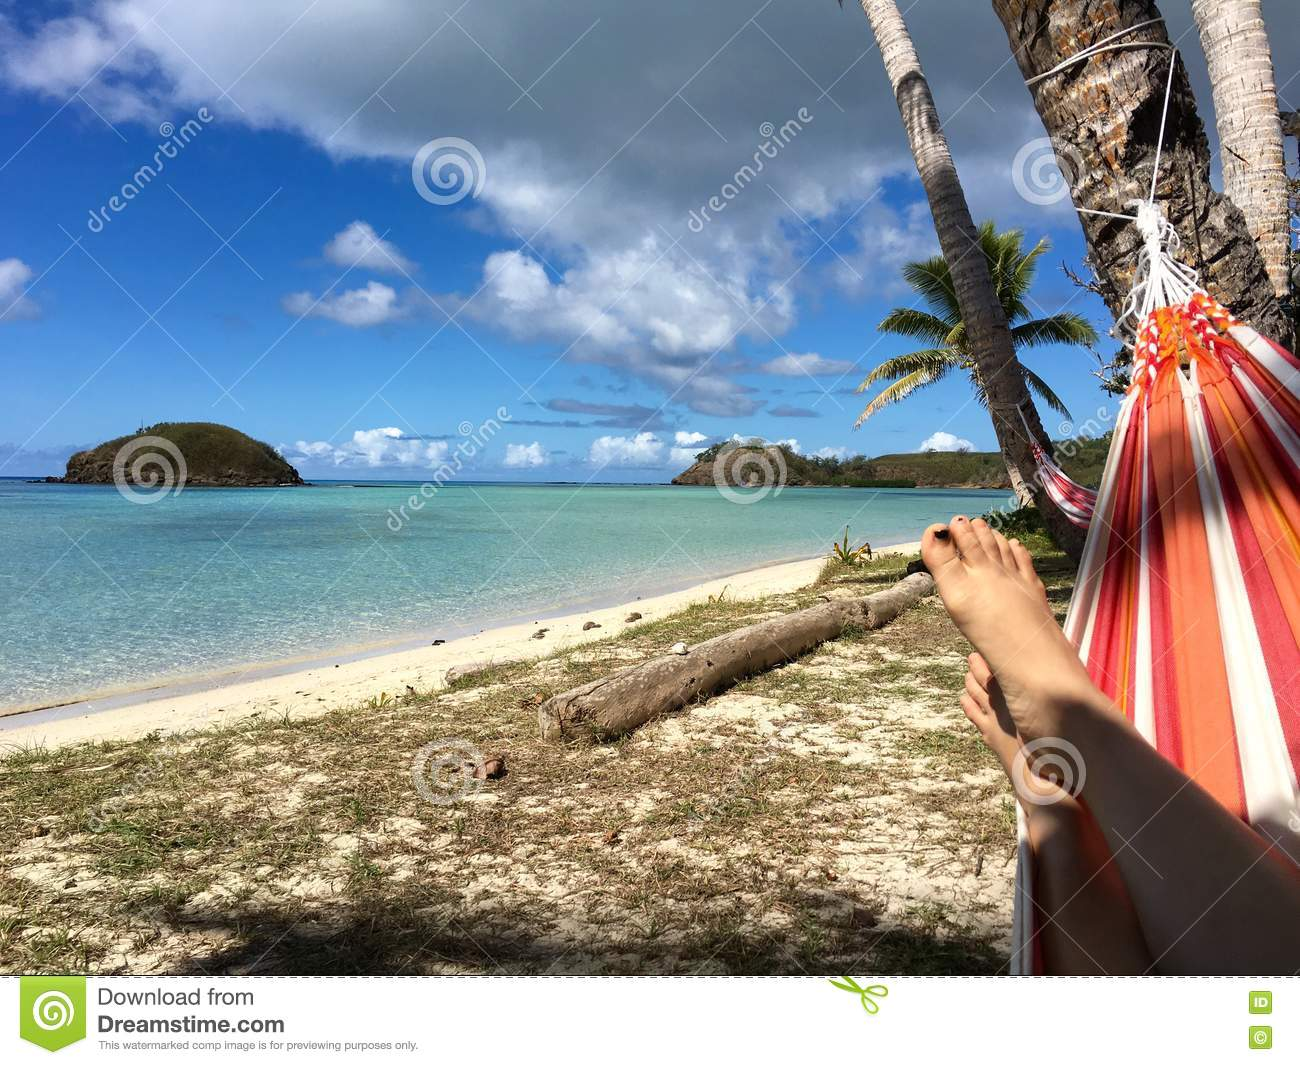 Relaxing under coconut trees shade on colourful hammock